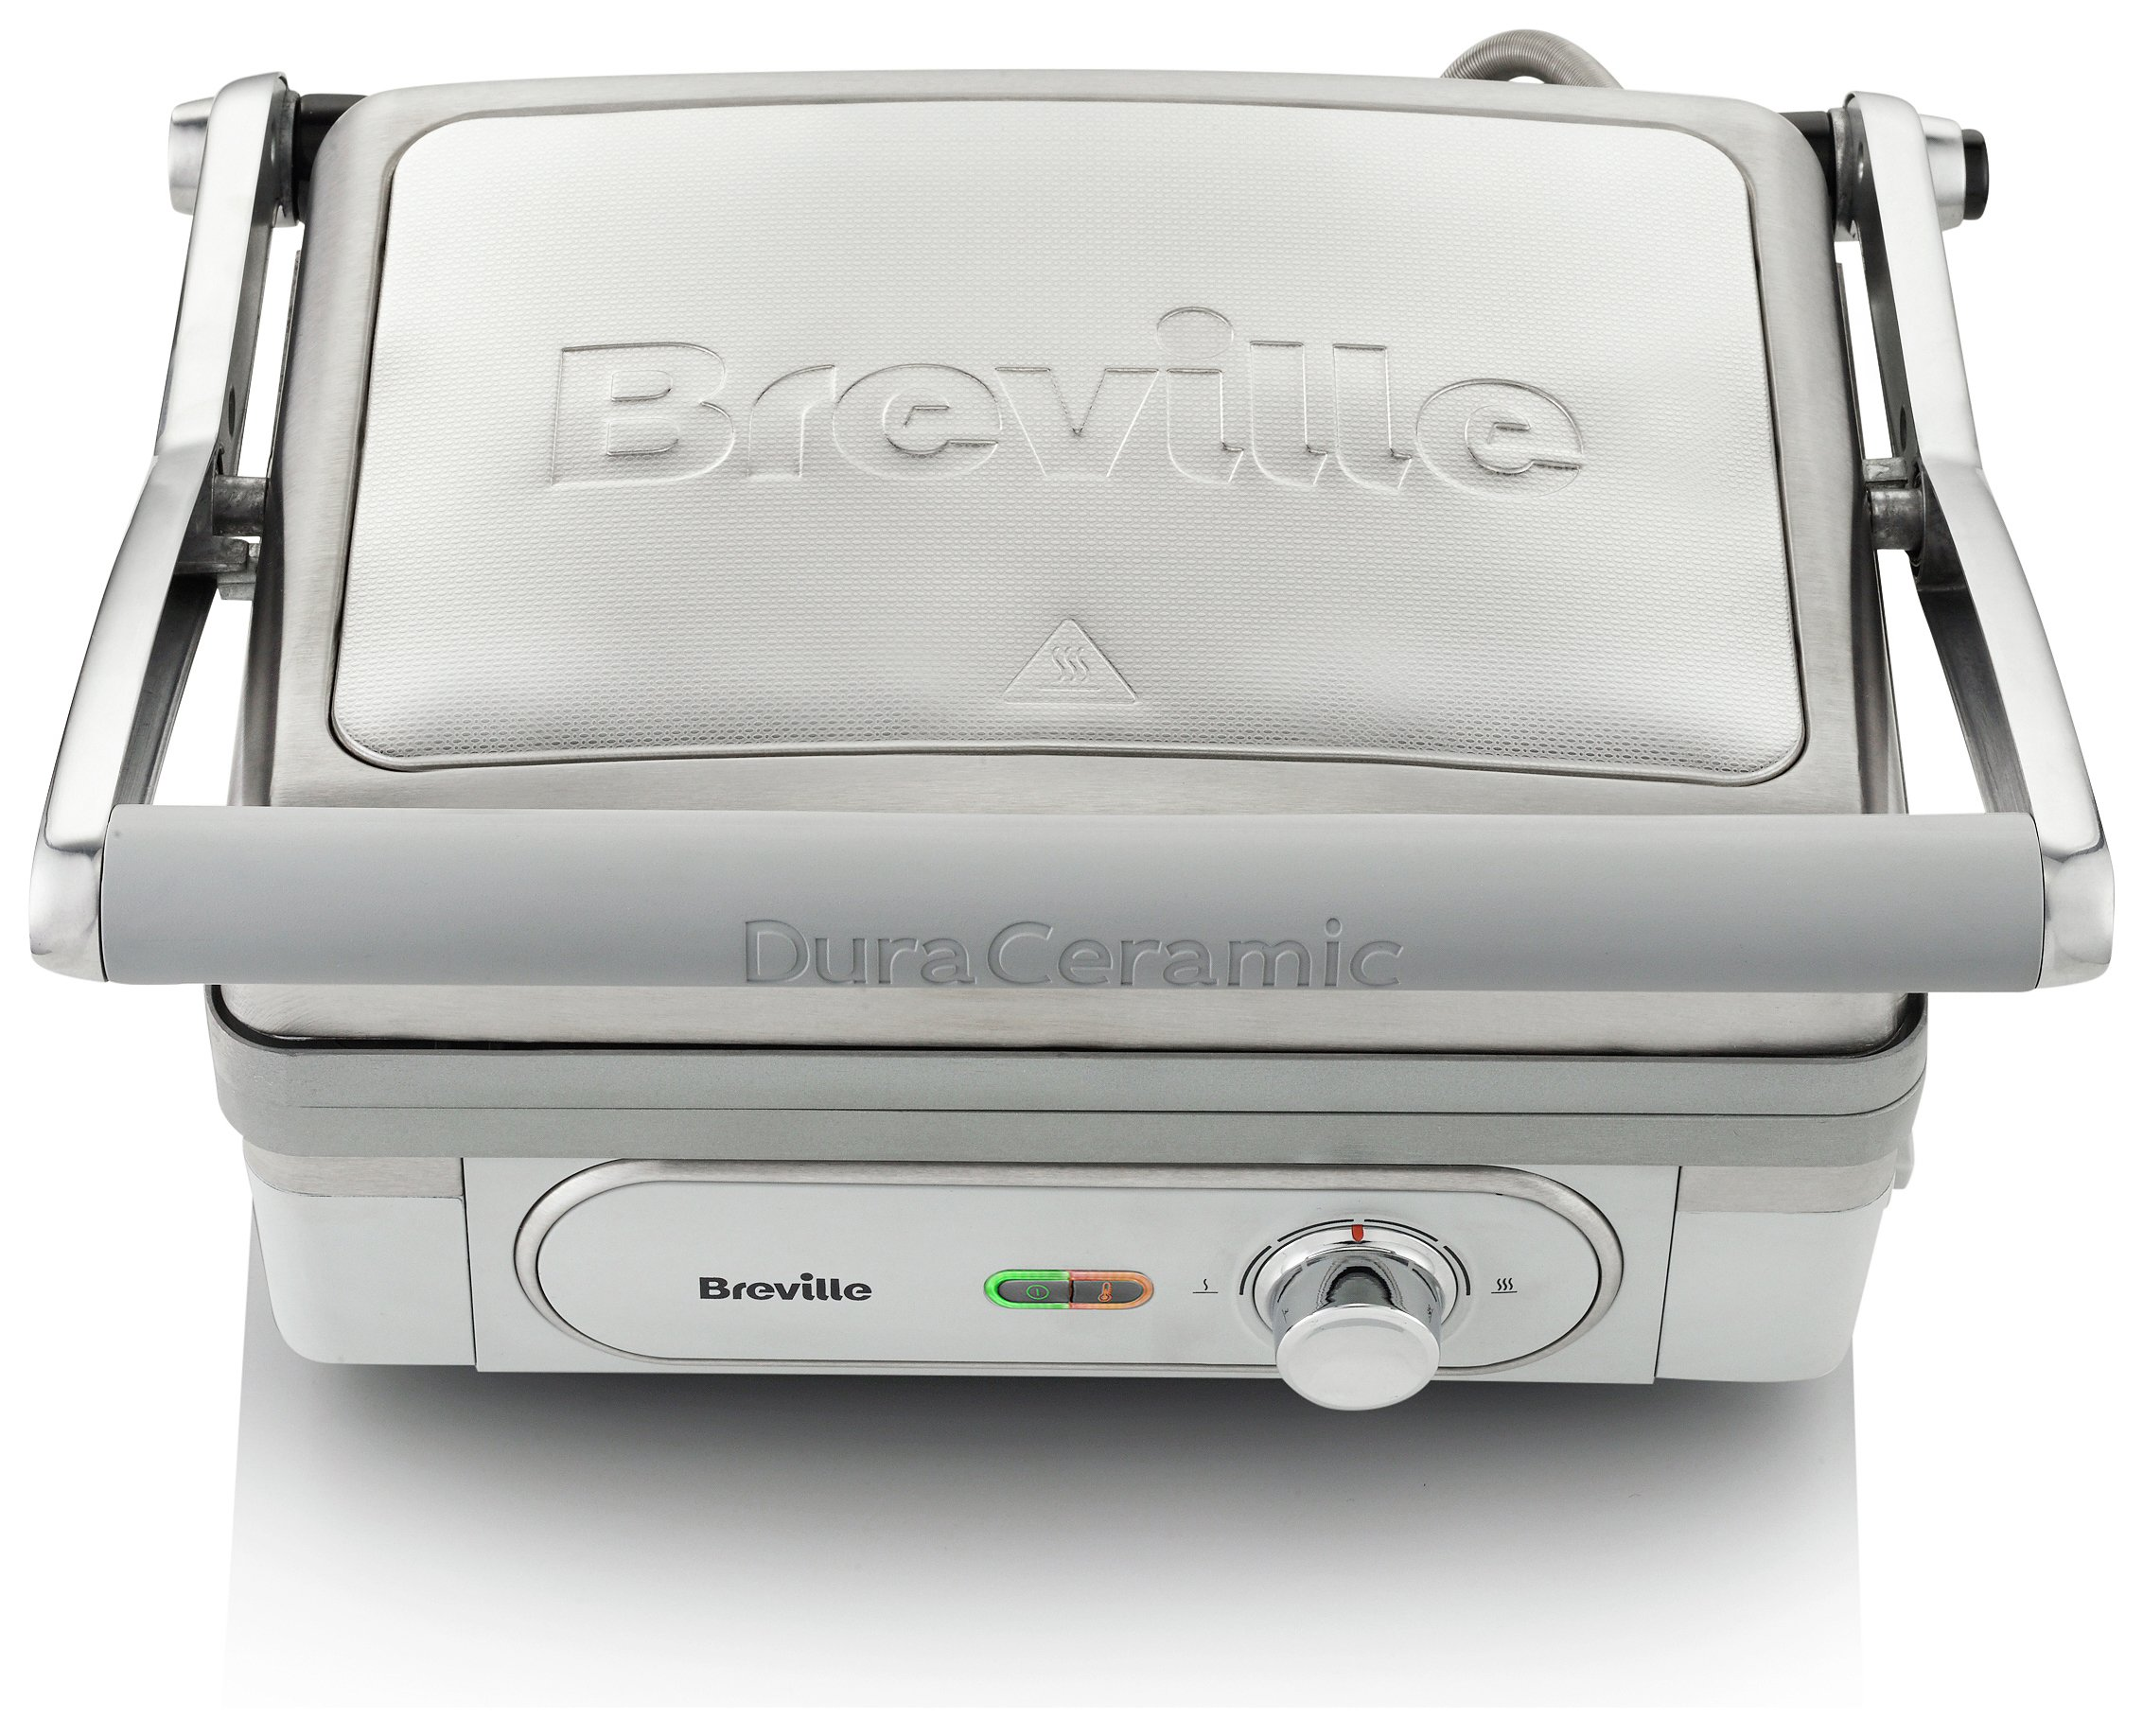 Image of Breville DuraCeramic Ultimate Grill.